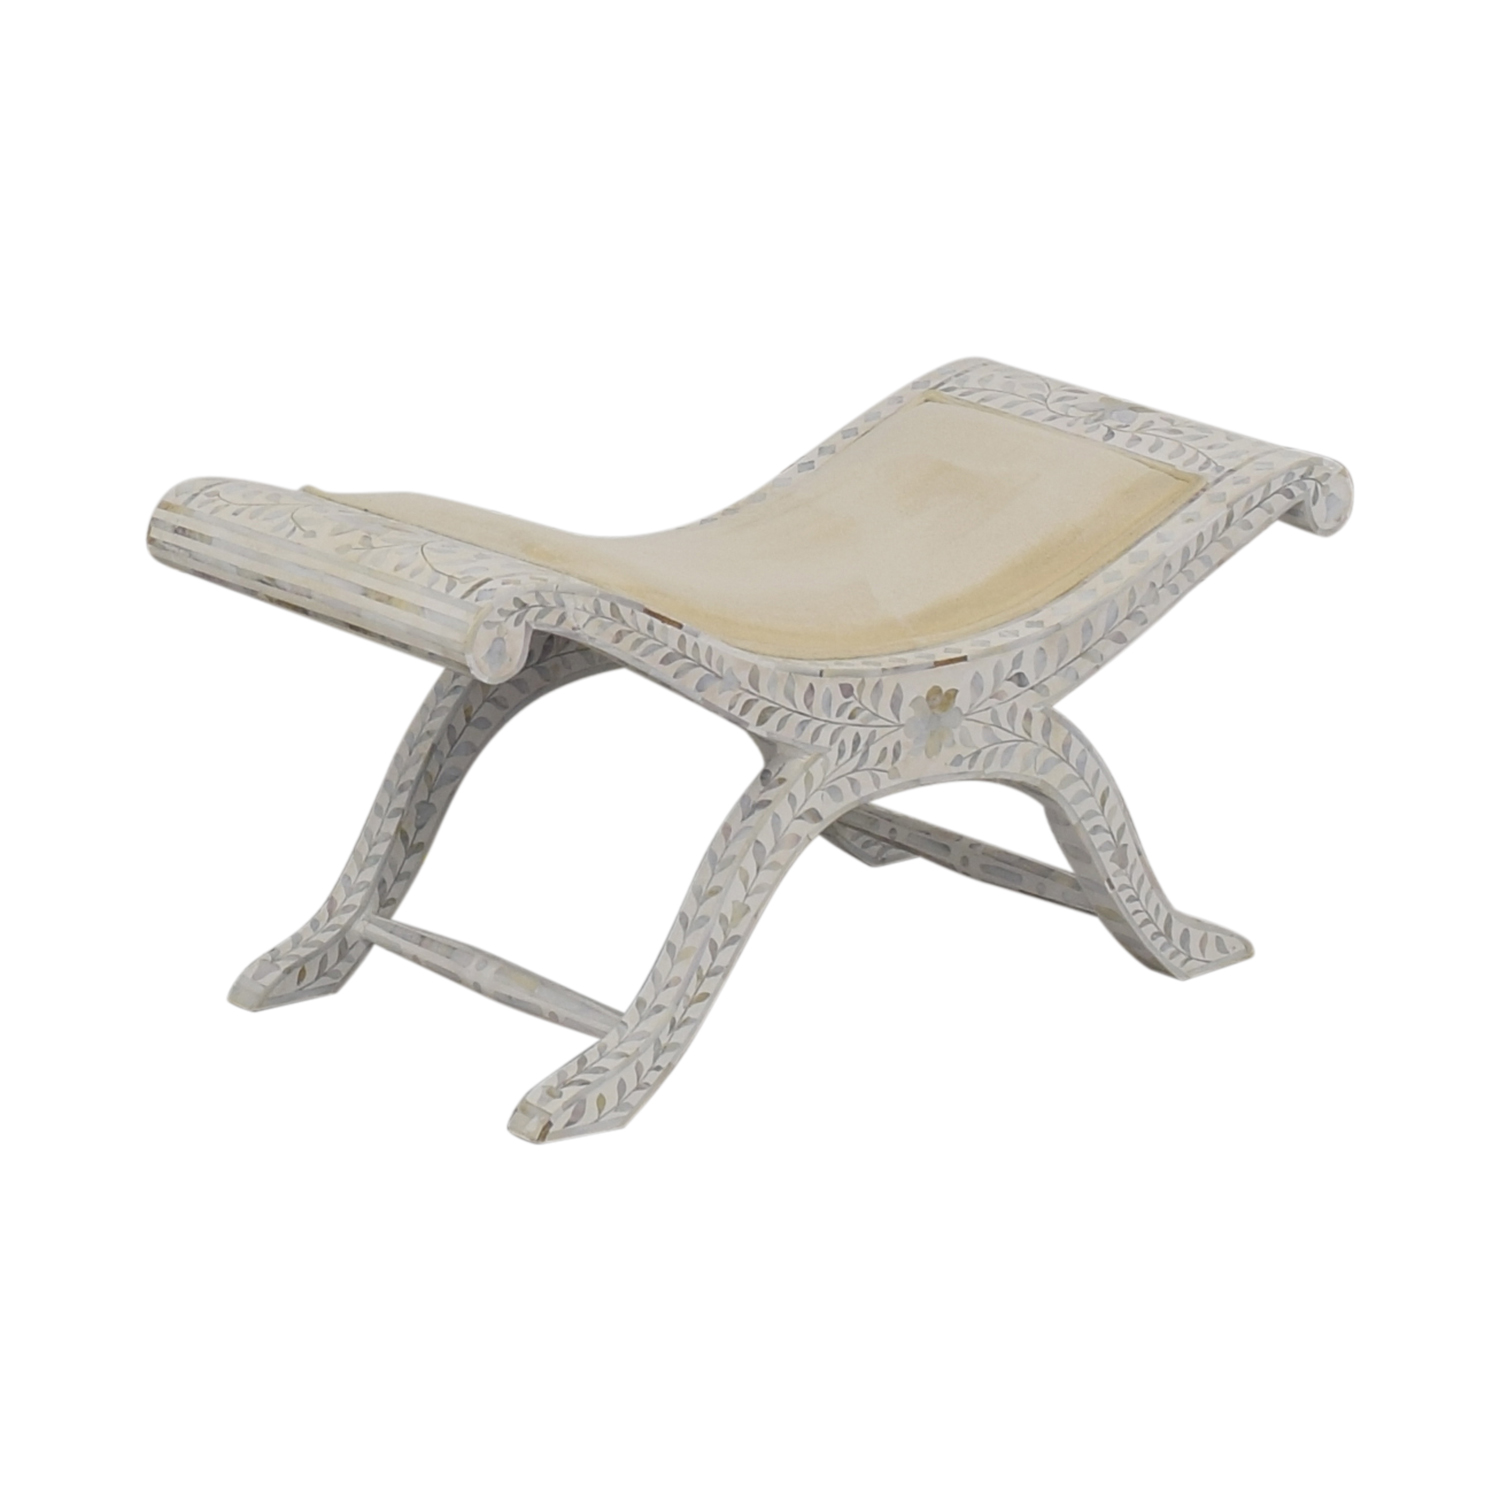 shop ABC Carpet & Home Shell Mosaic Bench ABC Carpet & Home Chairs